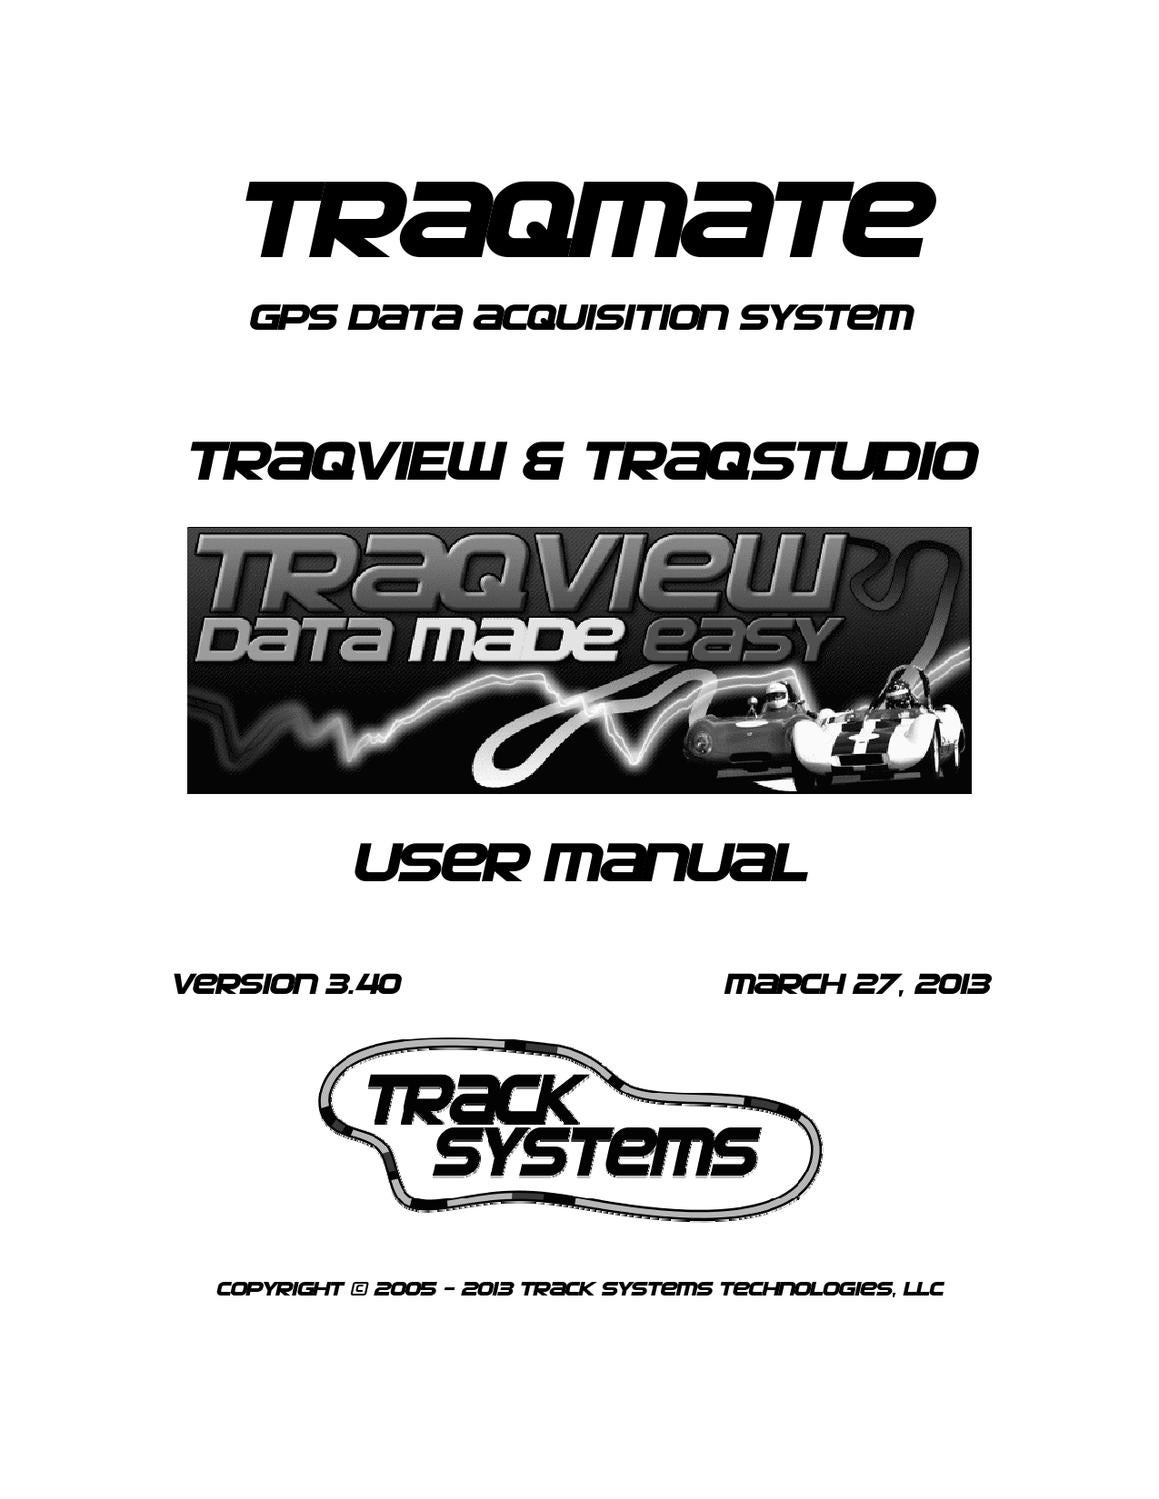 Traqmate Software User Manual by Andre Surles - issuu